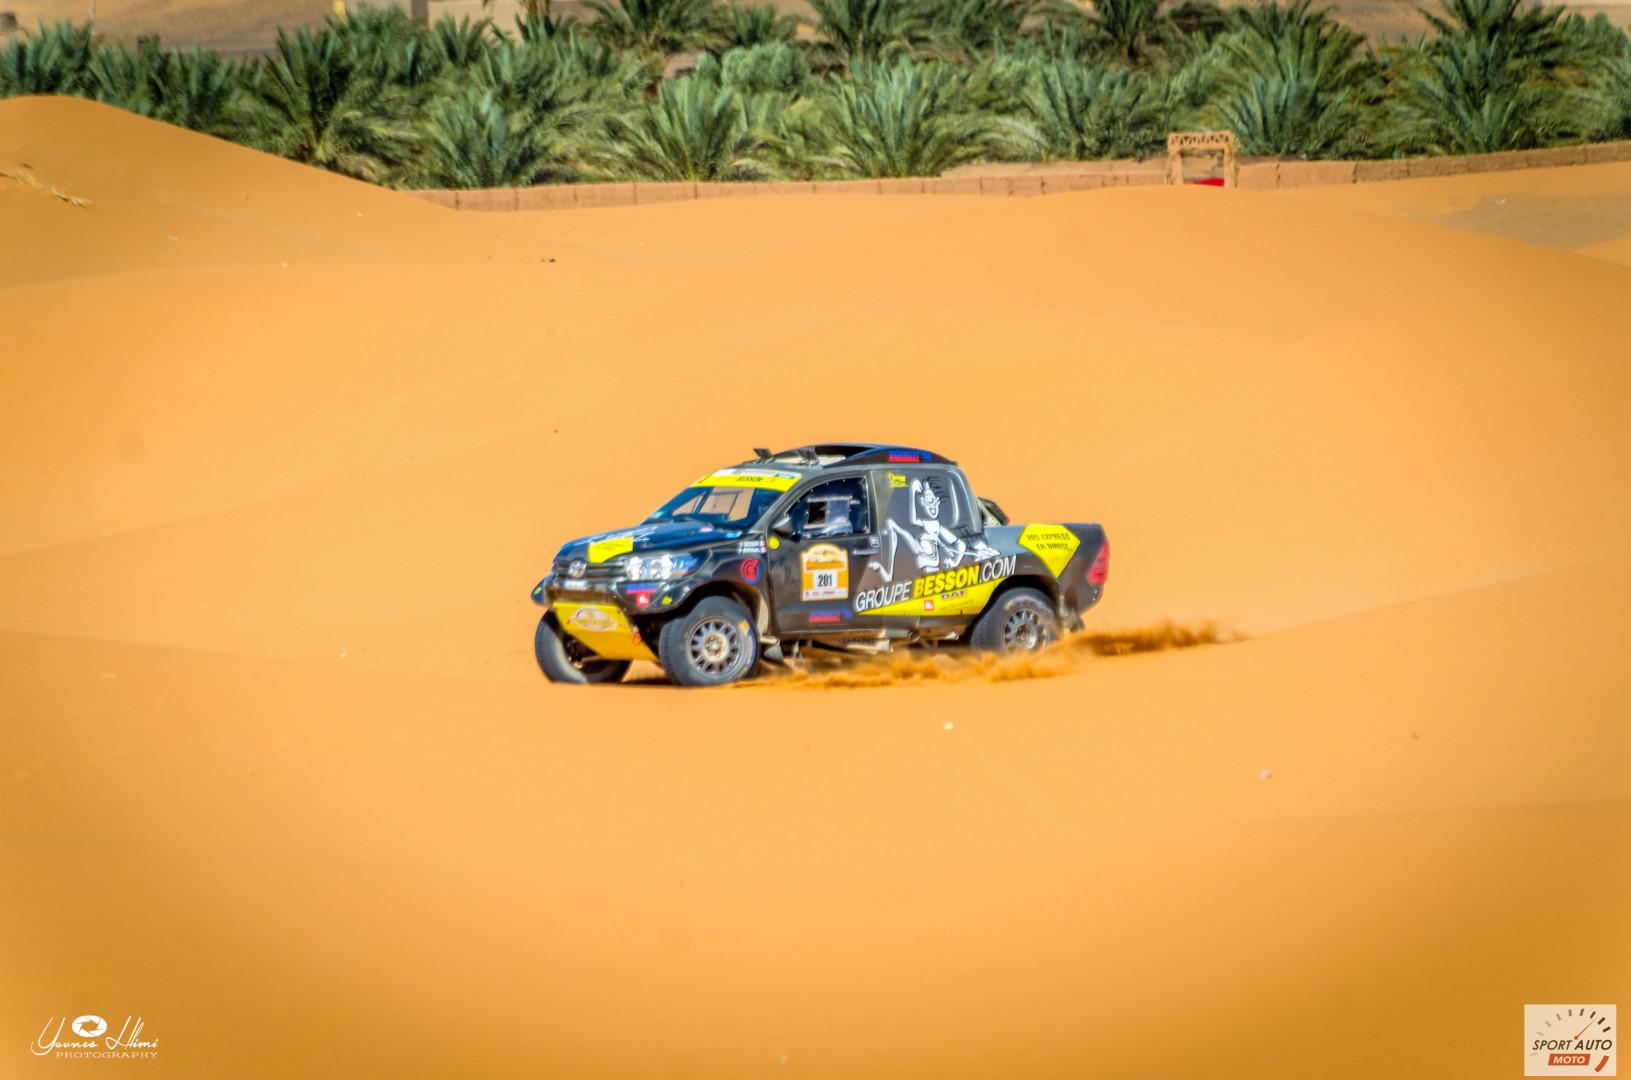 rallye-hearts-of-morrocco-2017-besson-remporte-la-premiere-edition-449-6.jpg